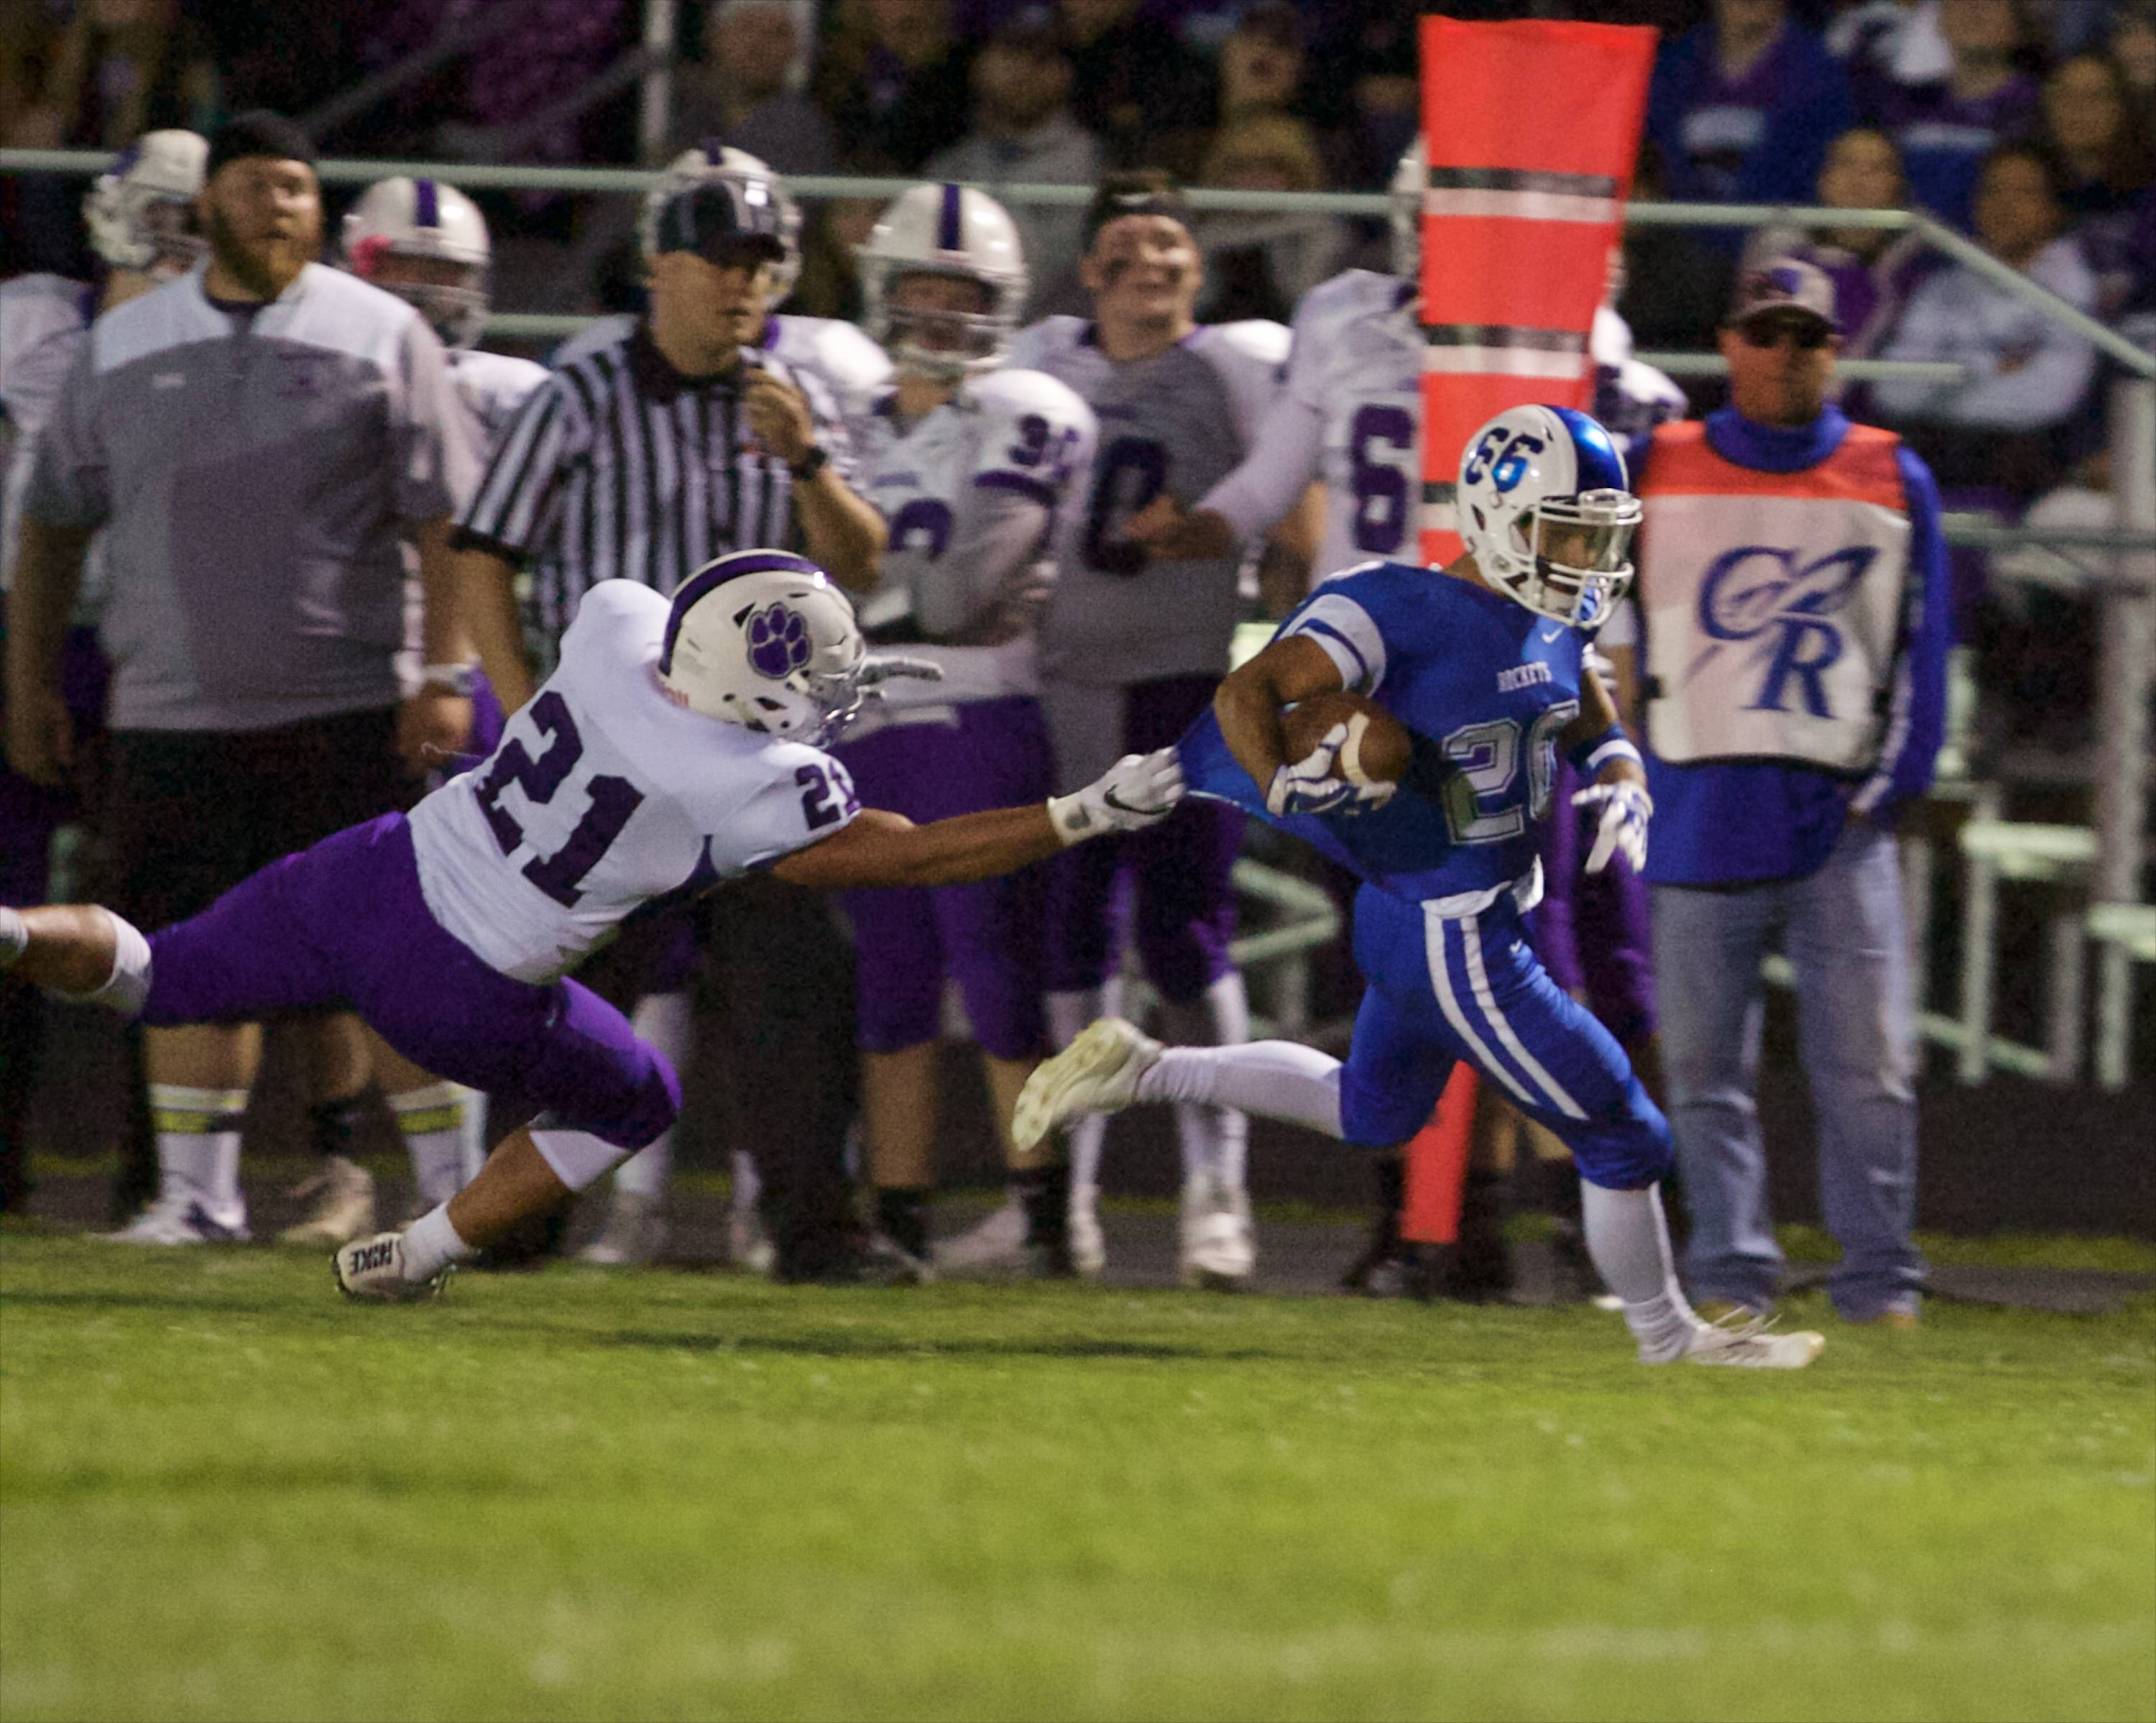 Burlington Central's Sawyer Perry gains yardage as Hampshire's Mohamed Harraz tries for the tackle Friday in Burlington.